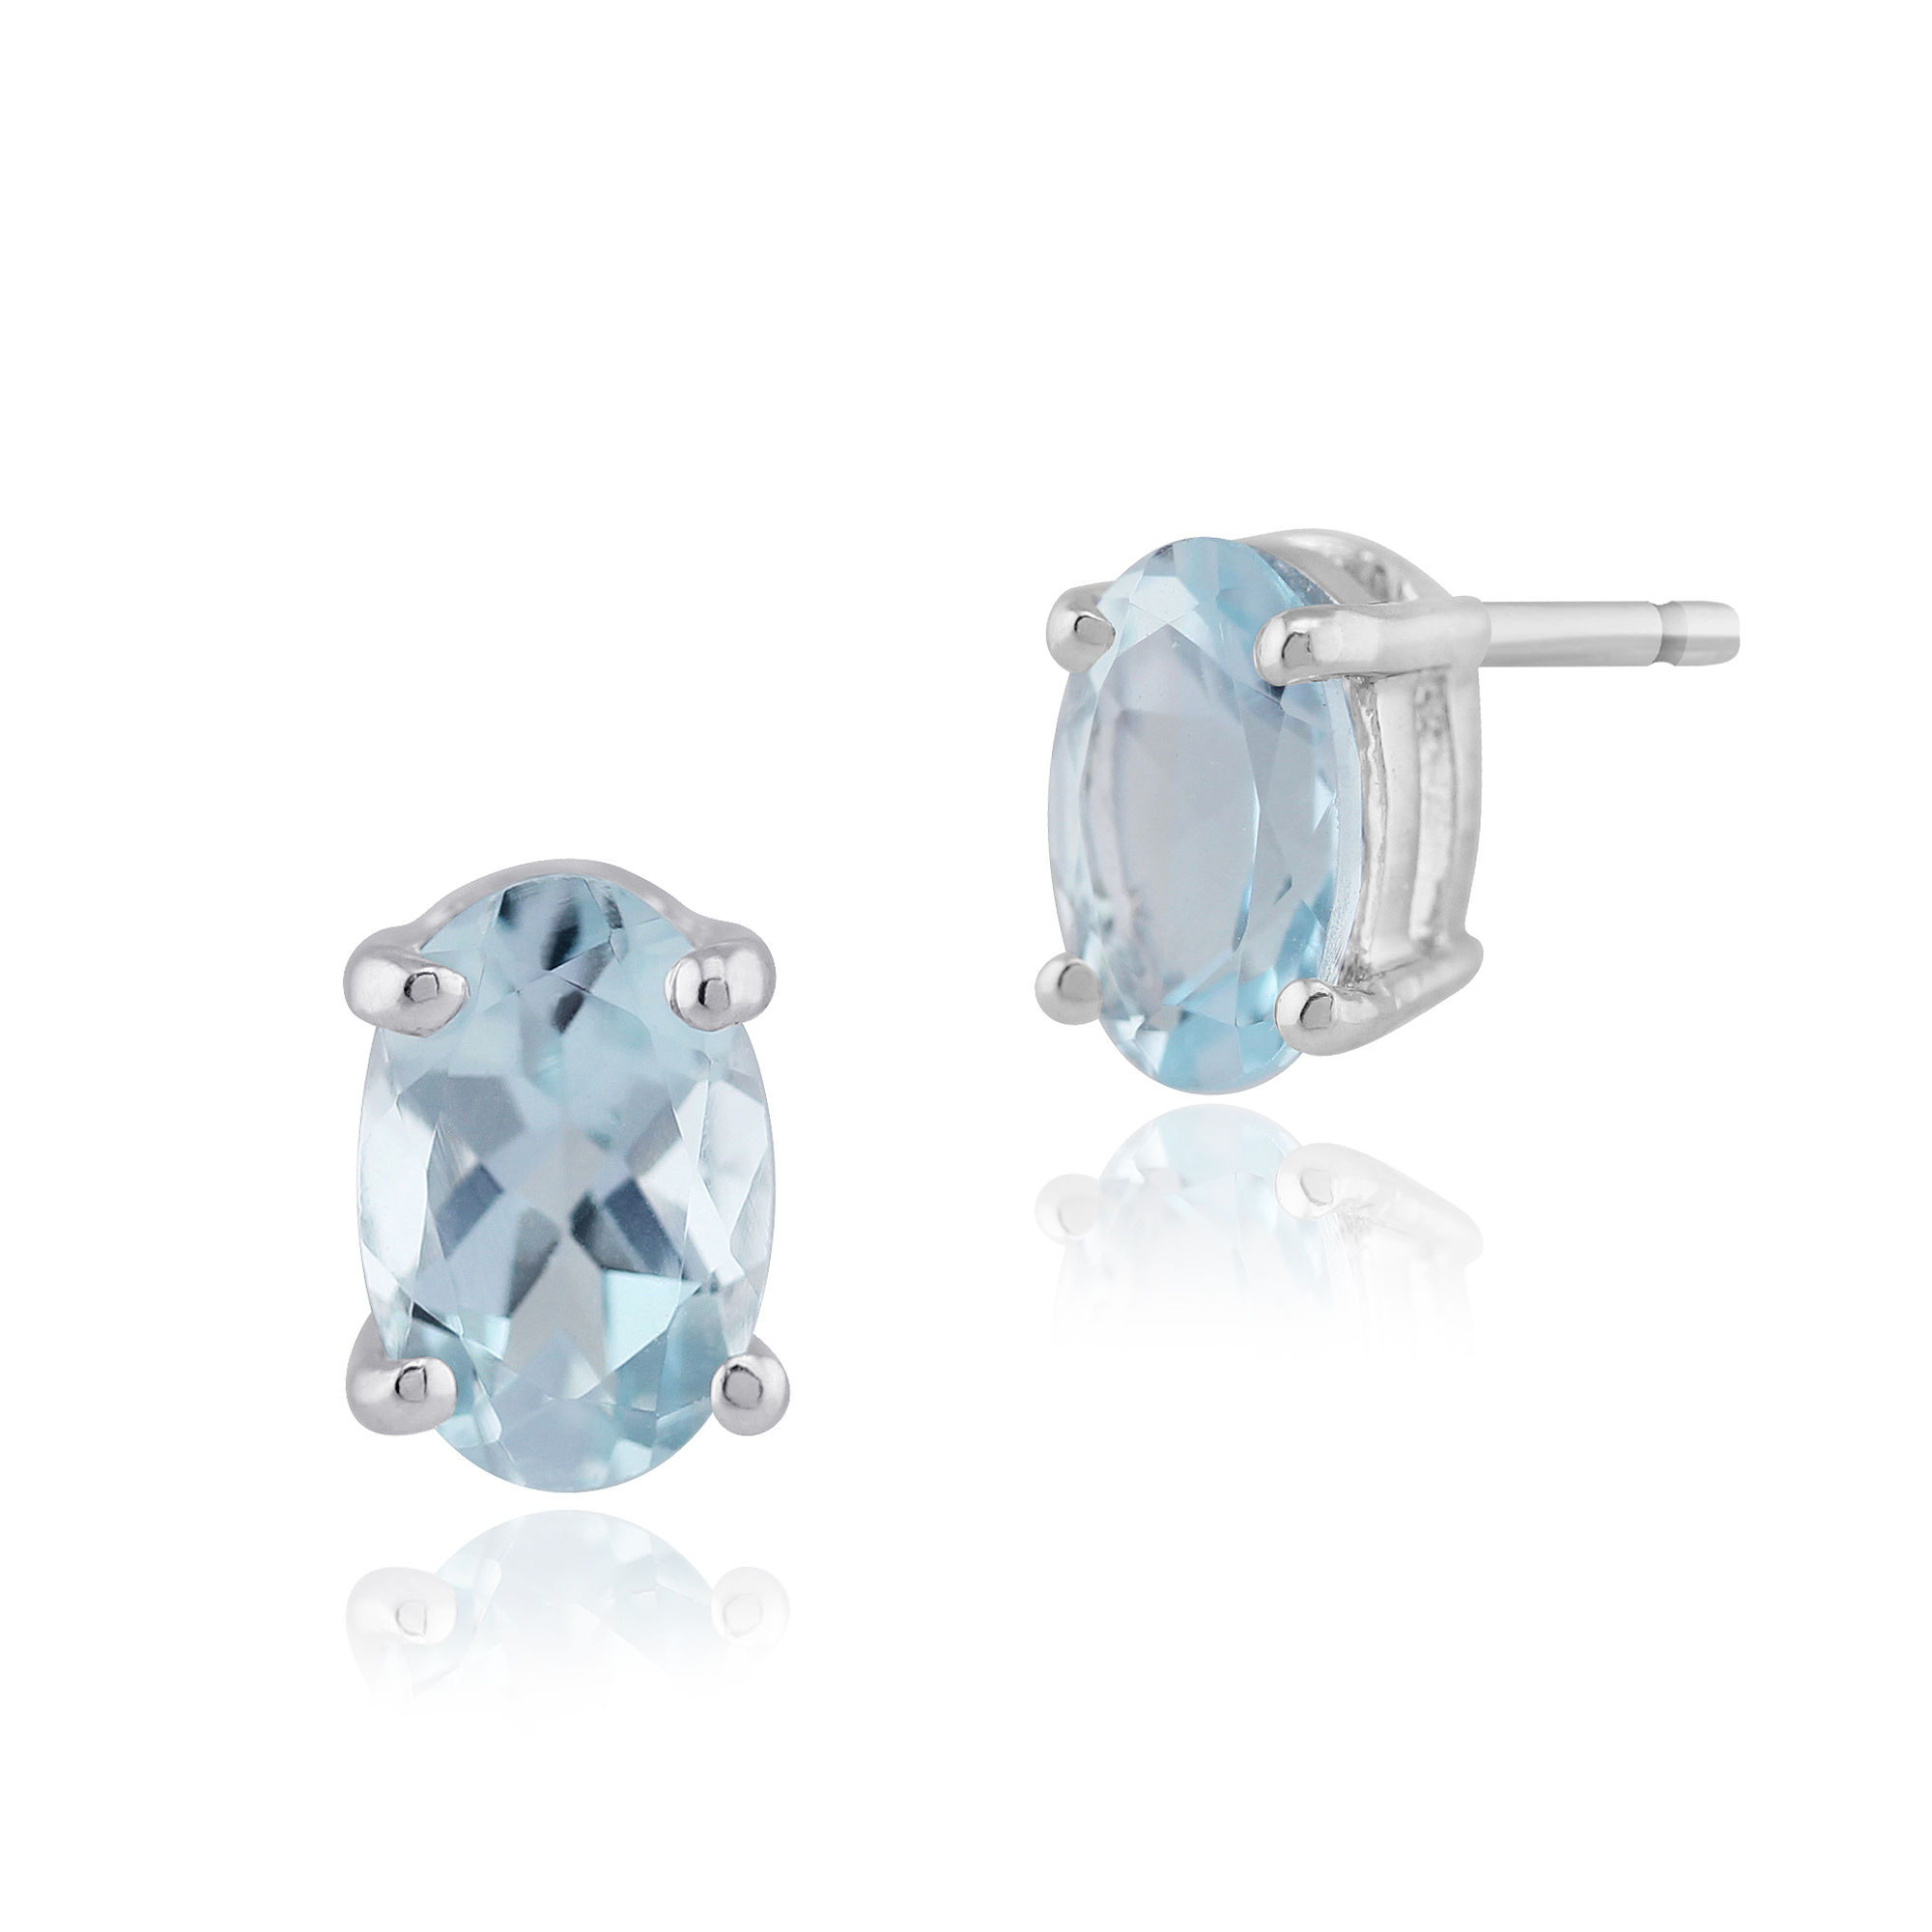 Gemondo 9ct White Gold 0.70ct 4 Claw Set Aquamarine Oval Stud Earrings 6x4mm